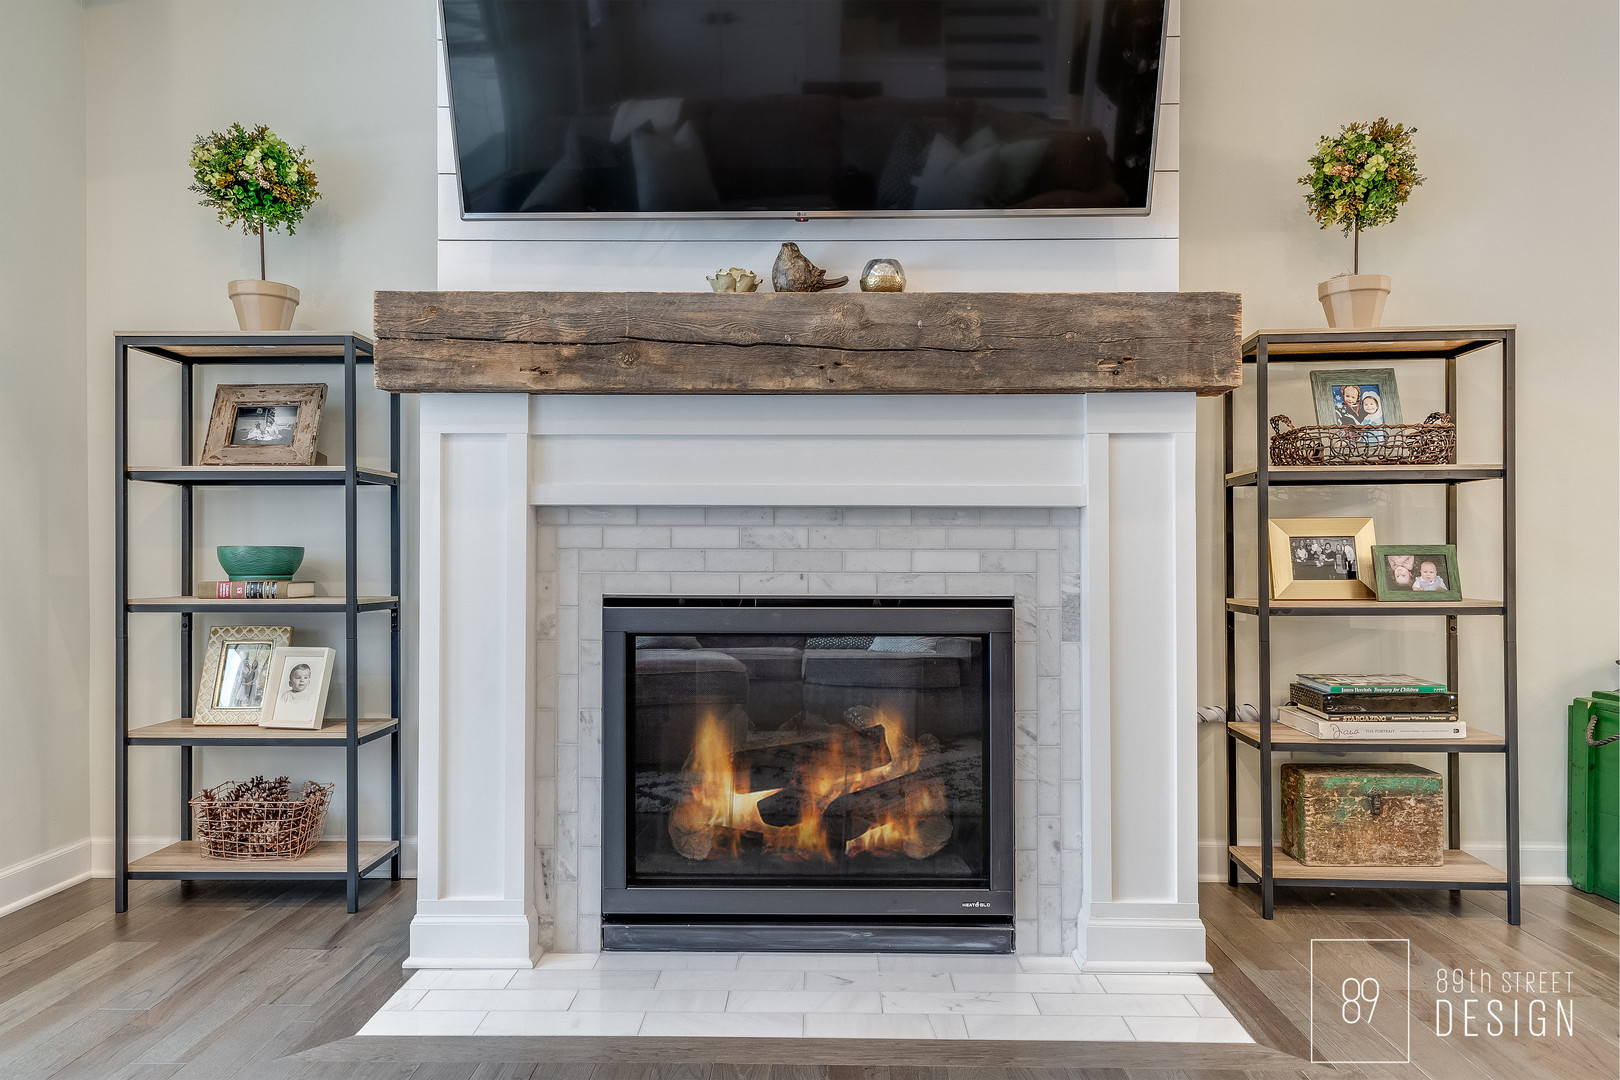 Kenosha_Marble-Fireplace_Living-Room